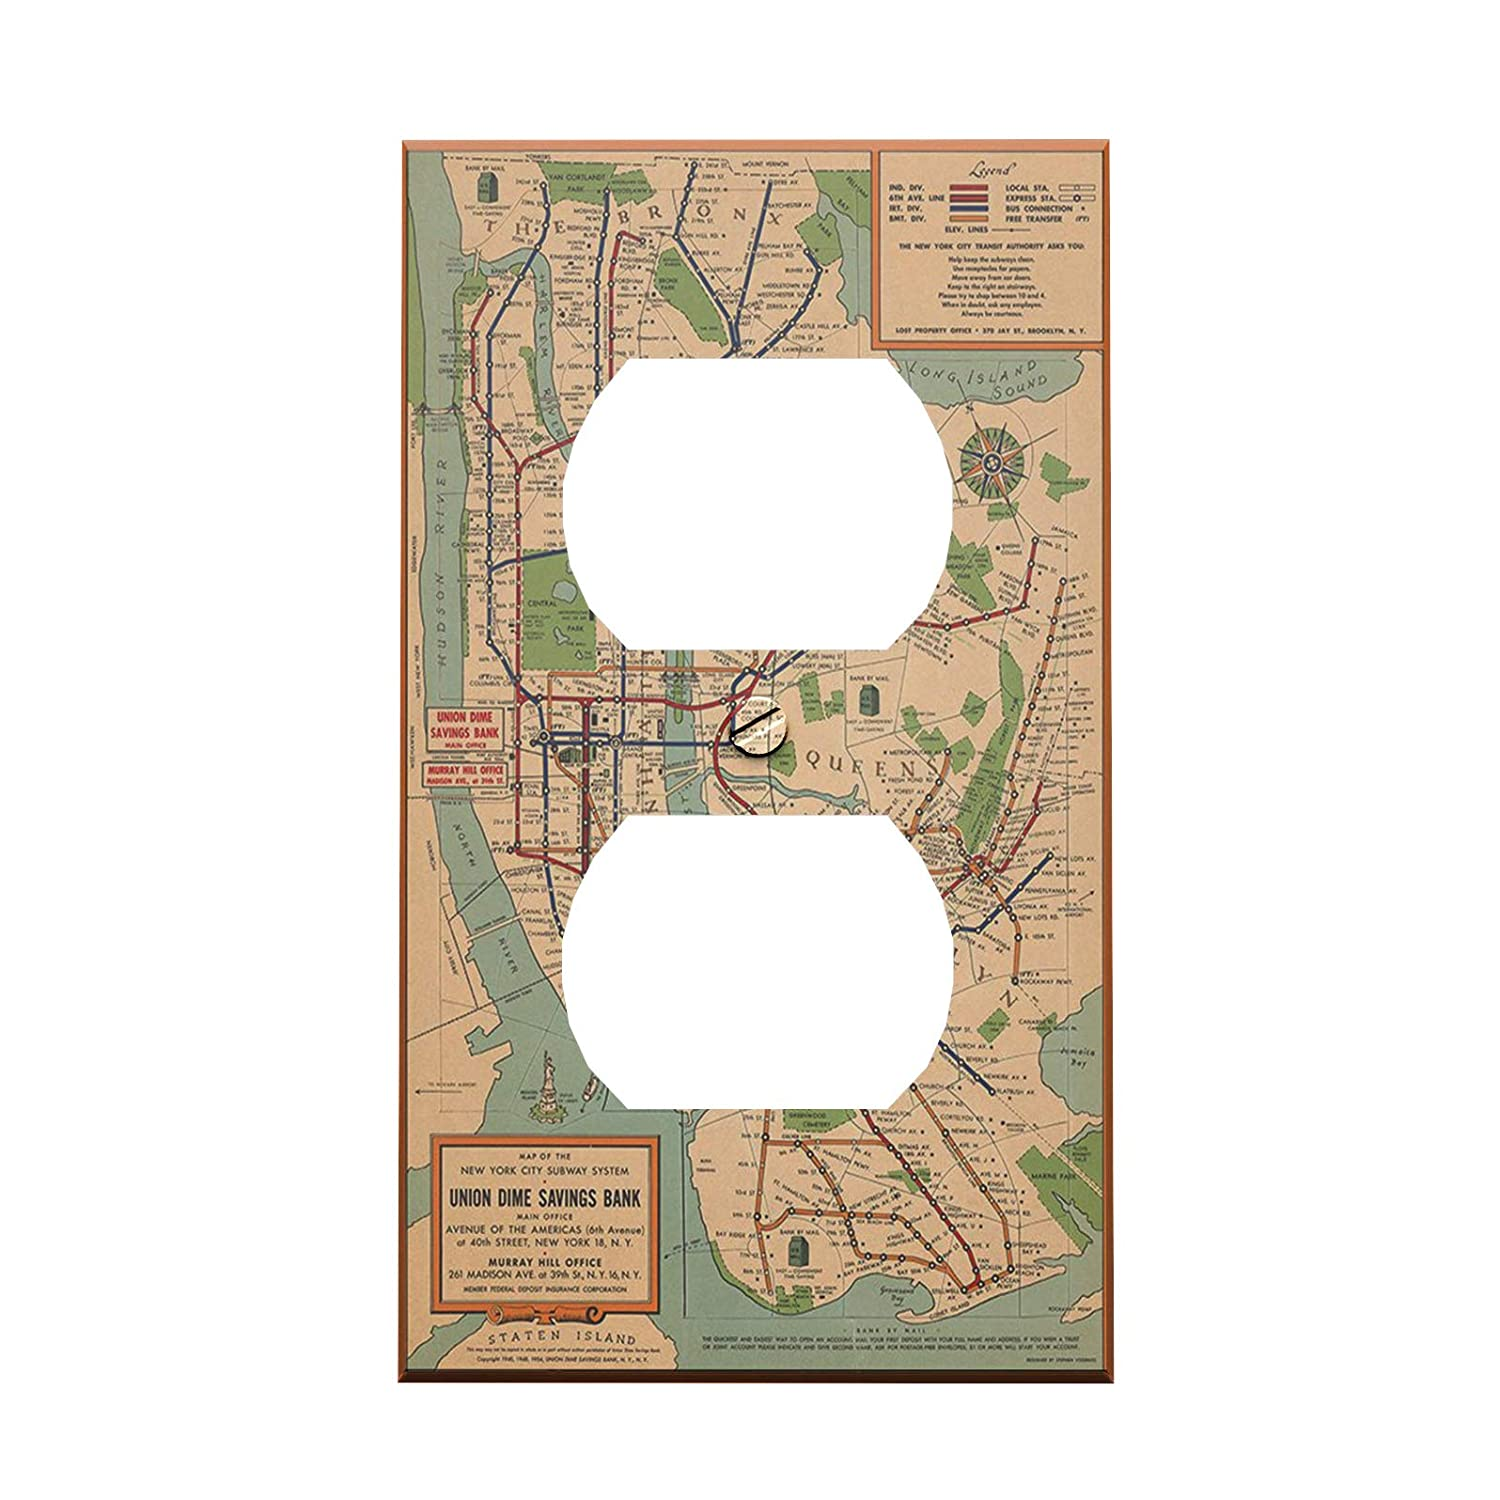 Madison Subway Map.Vintage Nyc Subway Map Outlet Cover Amazon Com